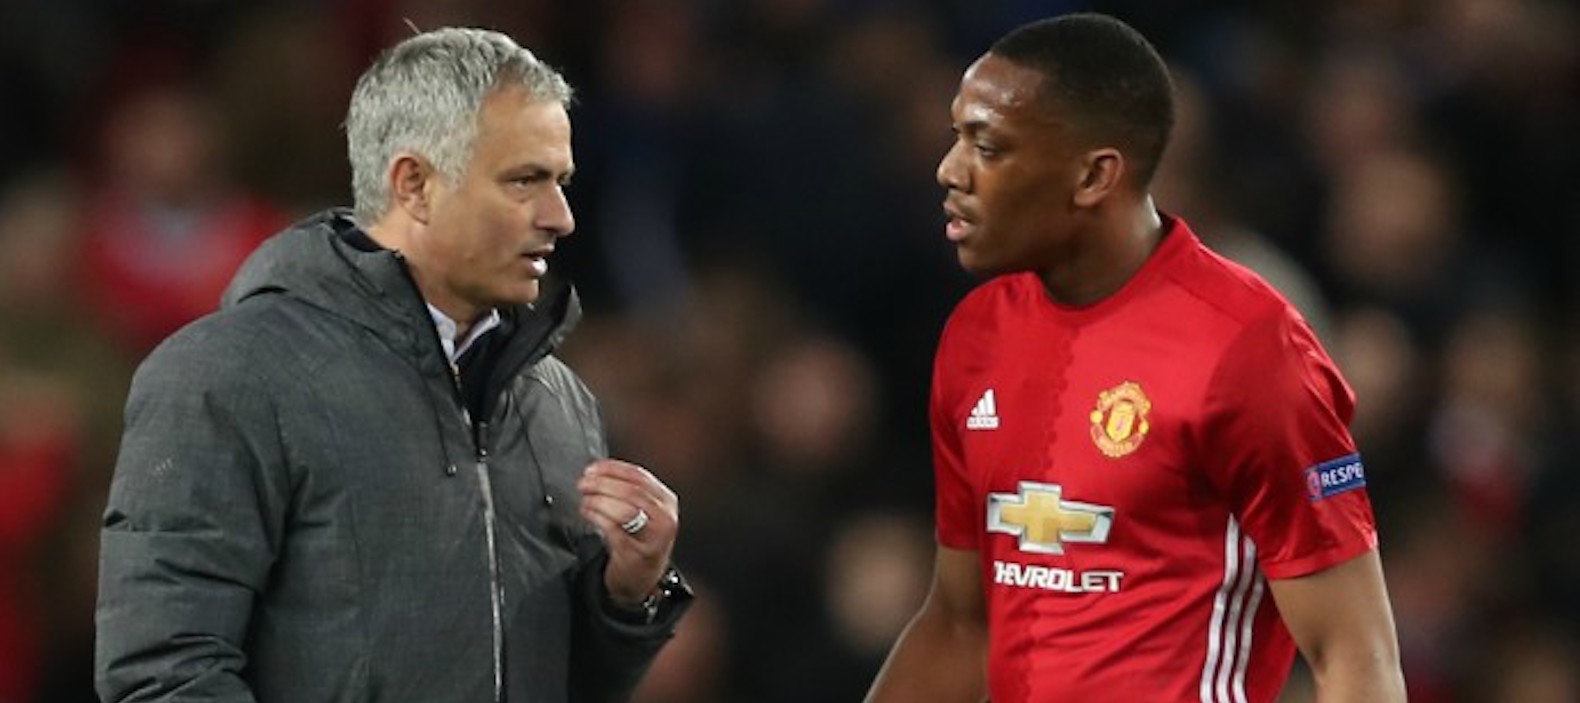 Anthony Martial misses Bayern clash due to training: report